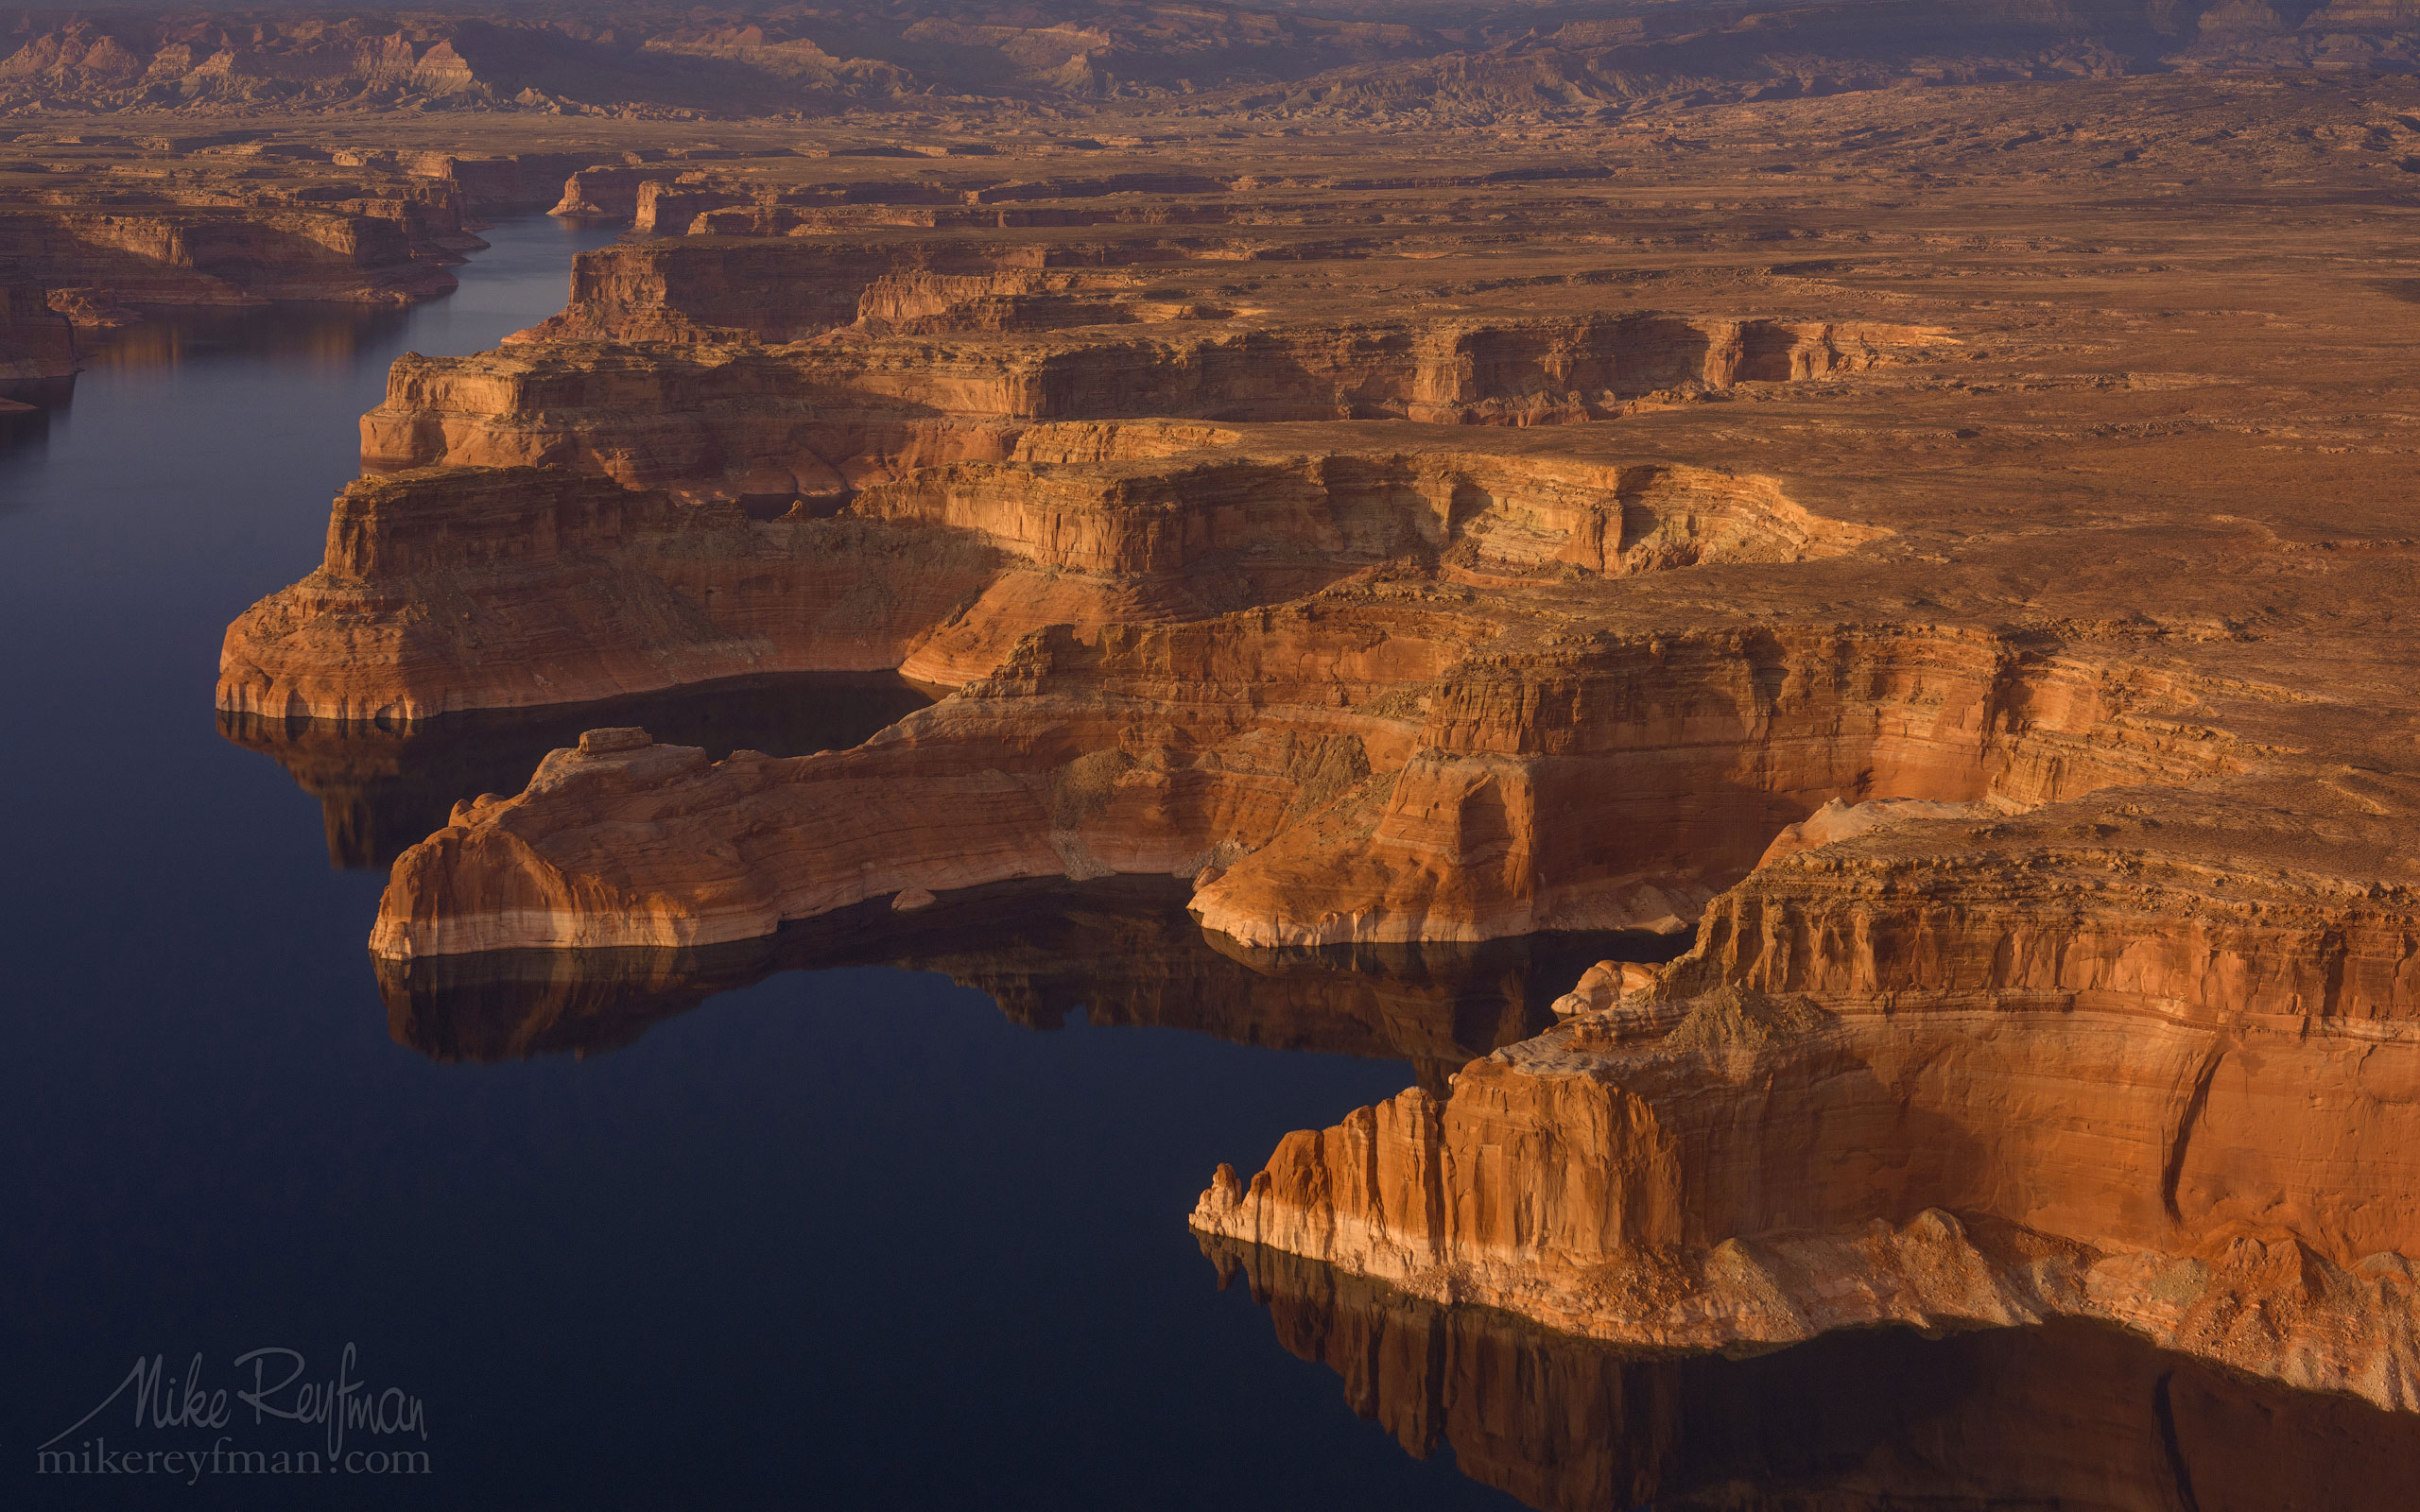 Lake Powell, Glen Canyon NRA, Utah/Arizona, USA. Aerial. 035-LP3_D8C9416.jpg - Lake Powell, Glen Canyon NAR. Colorado and Sun Juan Rivers. Utah/Arizona, USA  - Mike Reyfman Photography